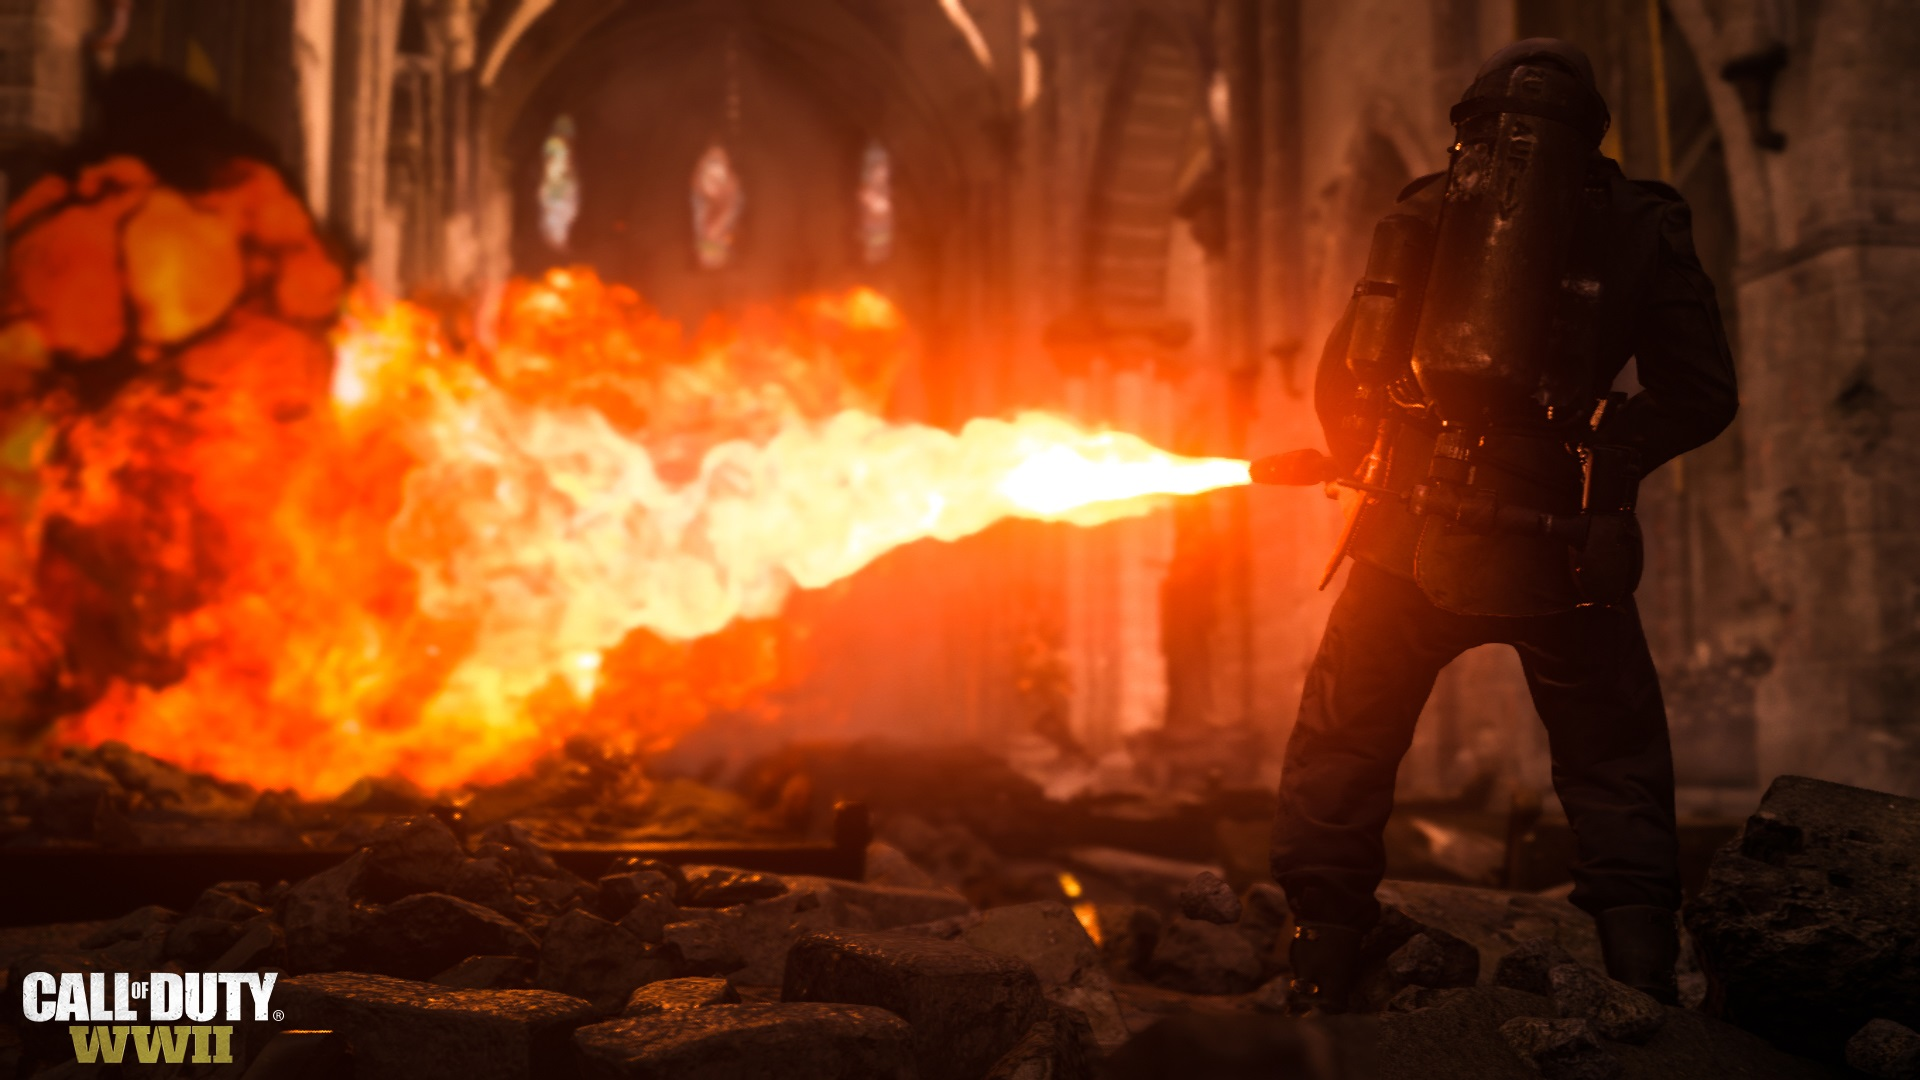 Call of Duty WWII multiplayer beta flamethrower